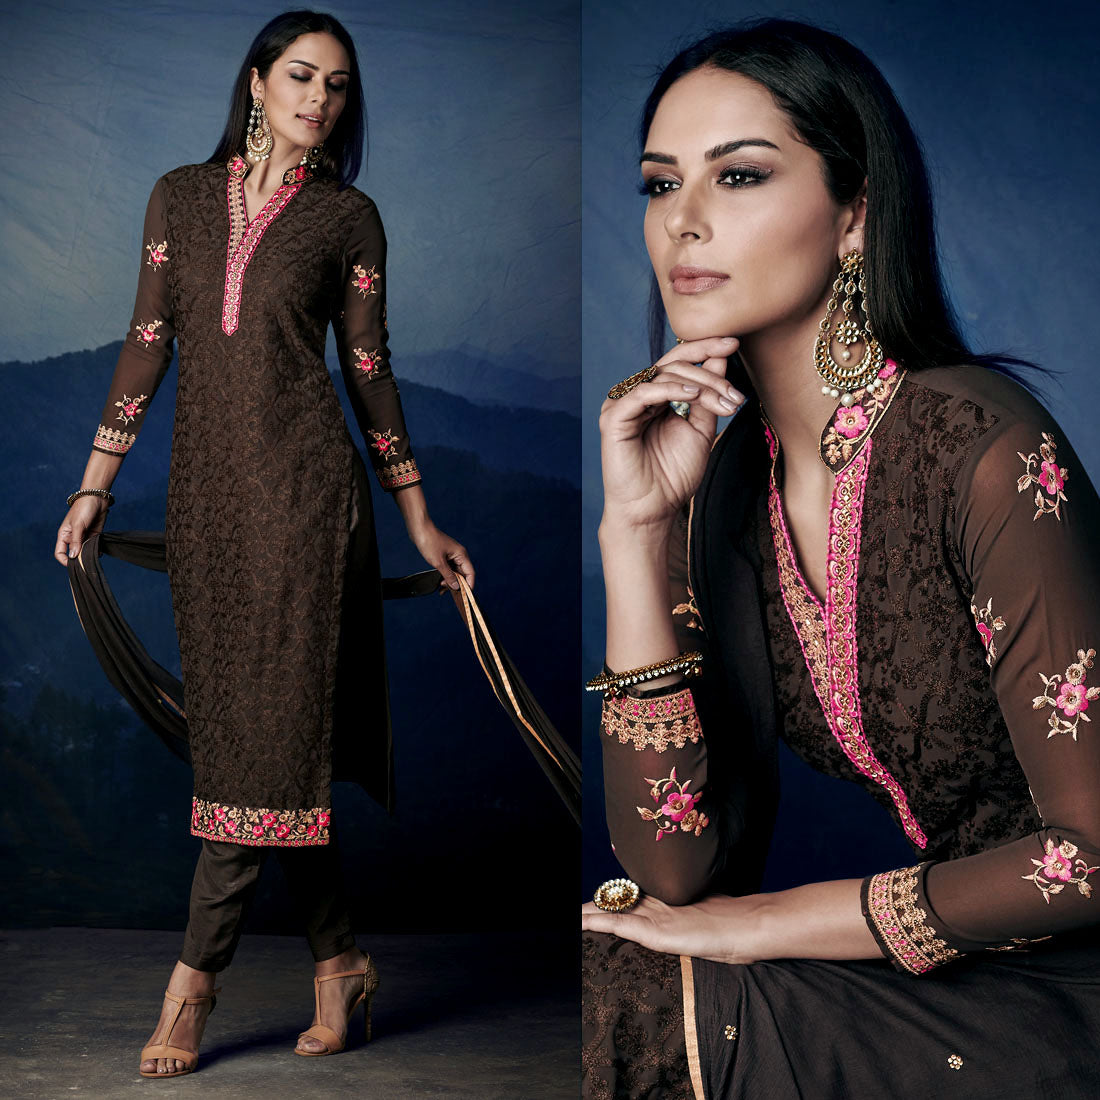 DARK COFFEE BROWN GEORGETTE UNSTITCHED LONG SALWAR KAMEEZ SUIT DRESS MATERIAL HEAVY AARI WORK LADIES DEN